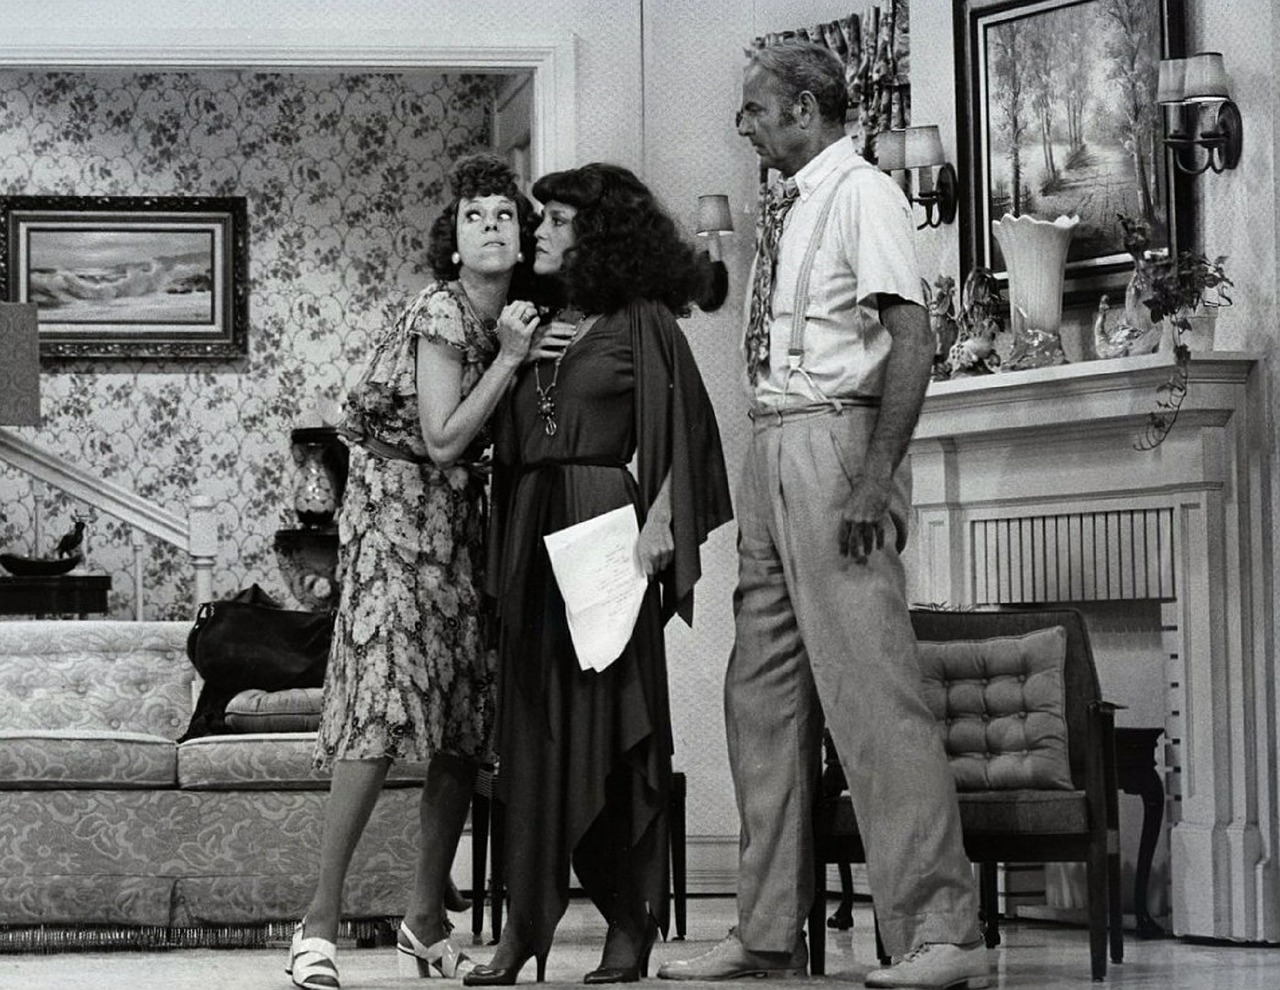 carol burnett,madeline kahn,harvey korman,actress,actor,television,sketch comedy,variety,carol burnett show,hollywood,cinema,motion pictures,movies,classic,retro,icons,voice artist,singer,awards,free pictures, free photos, free images, royalty free, free illustrations